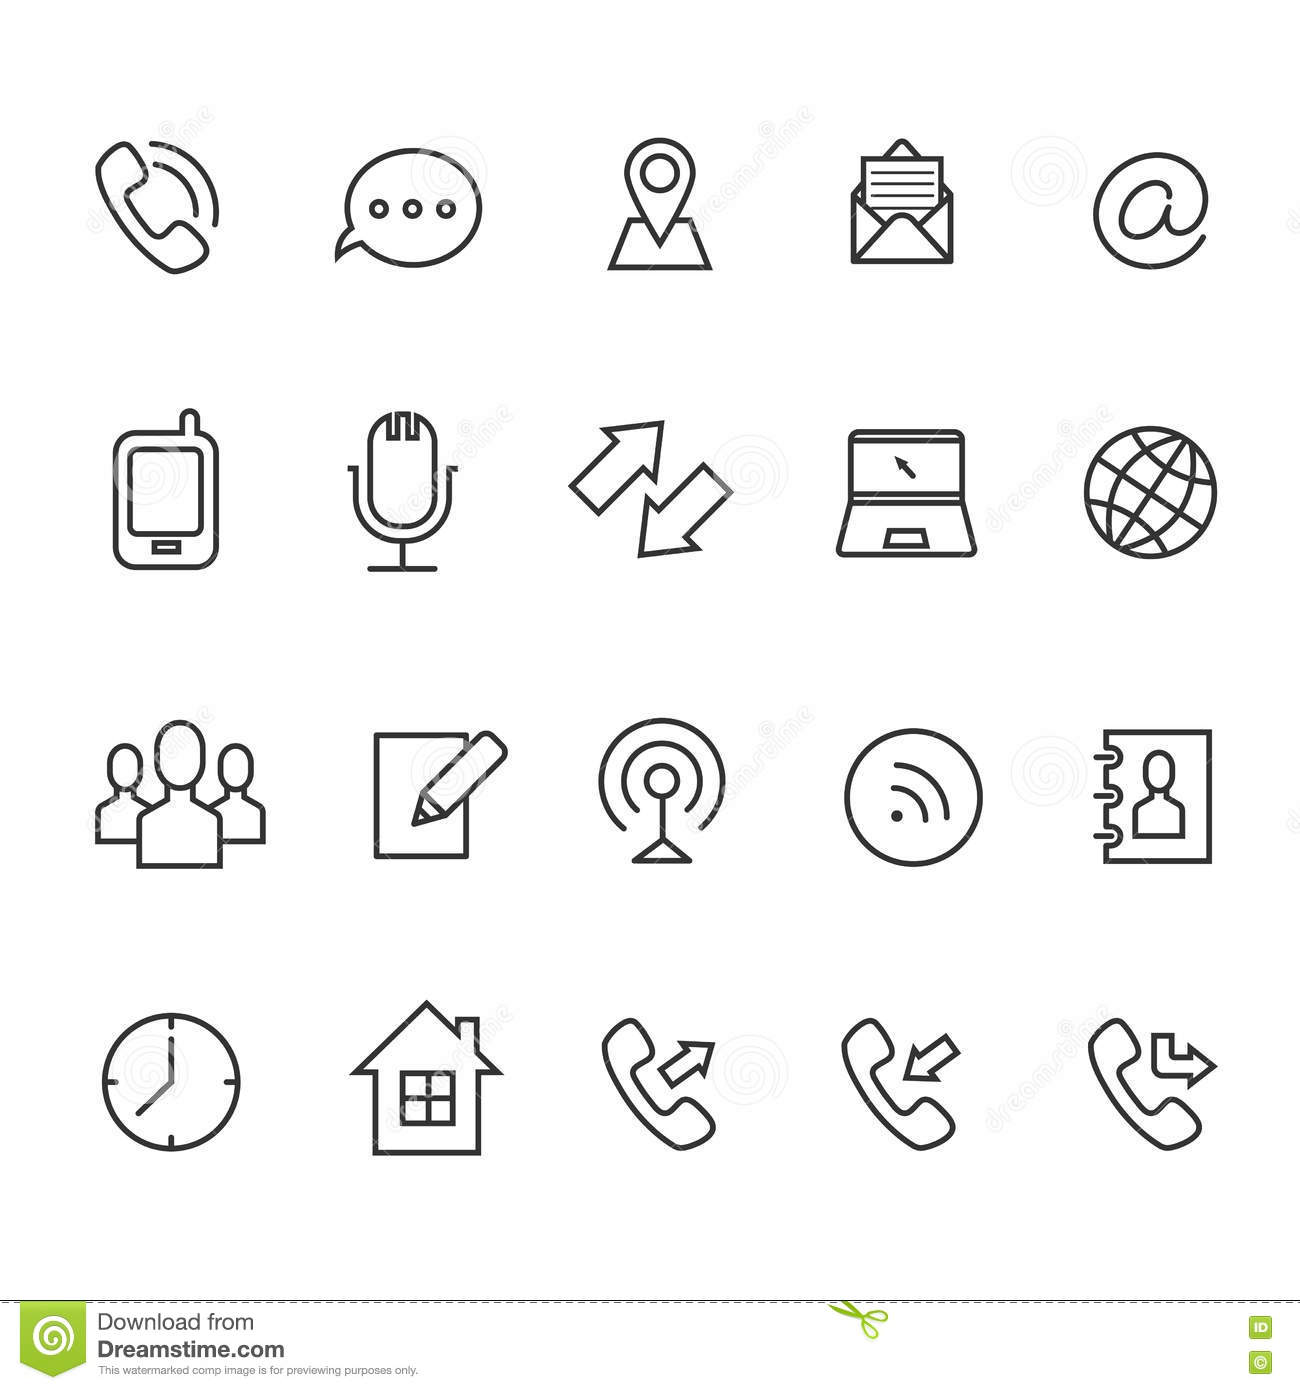 Free business card icons vector image collections card design and communication line vector icons for business card stock vector communication line vector icons for business card reheart Images